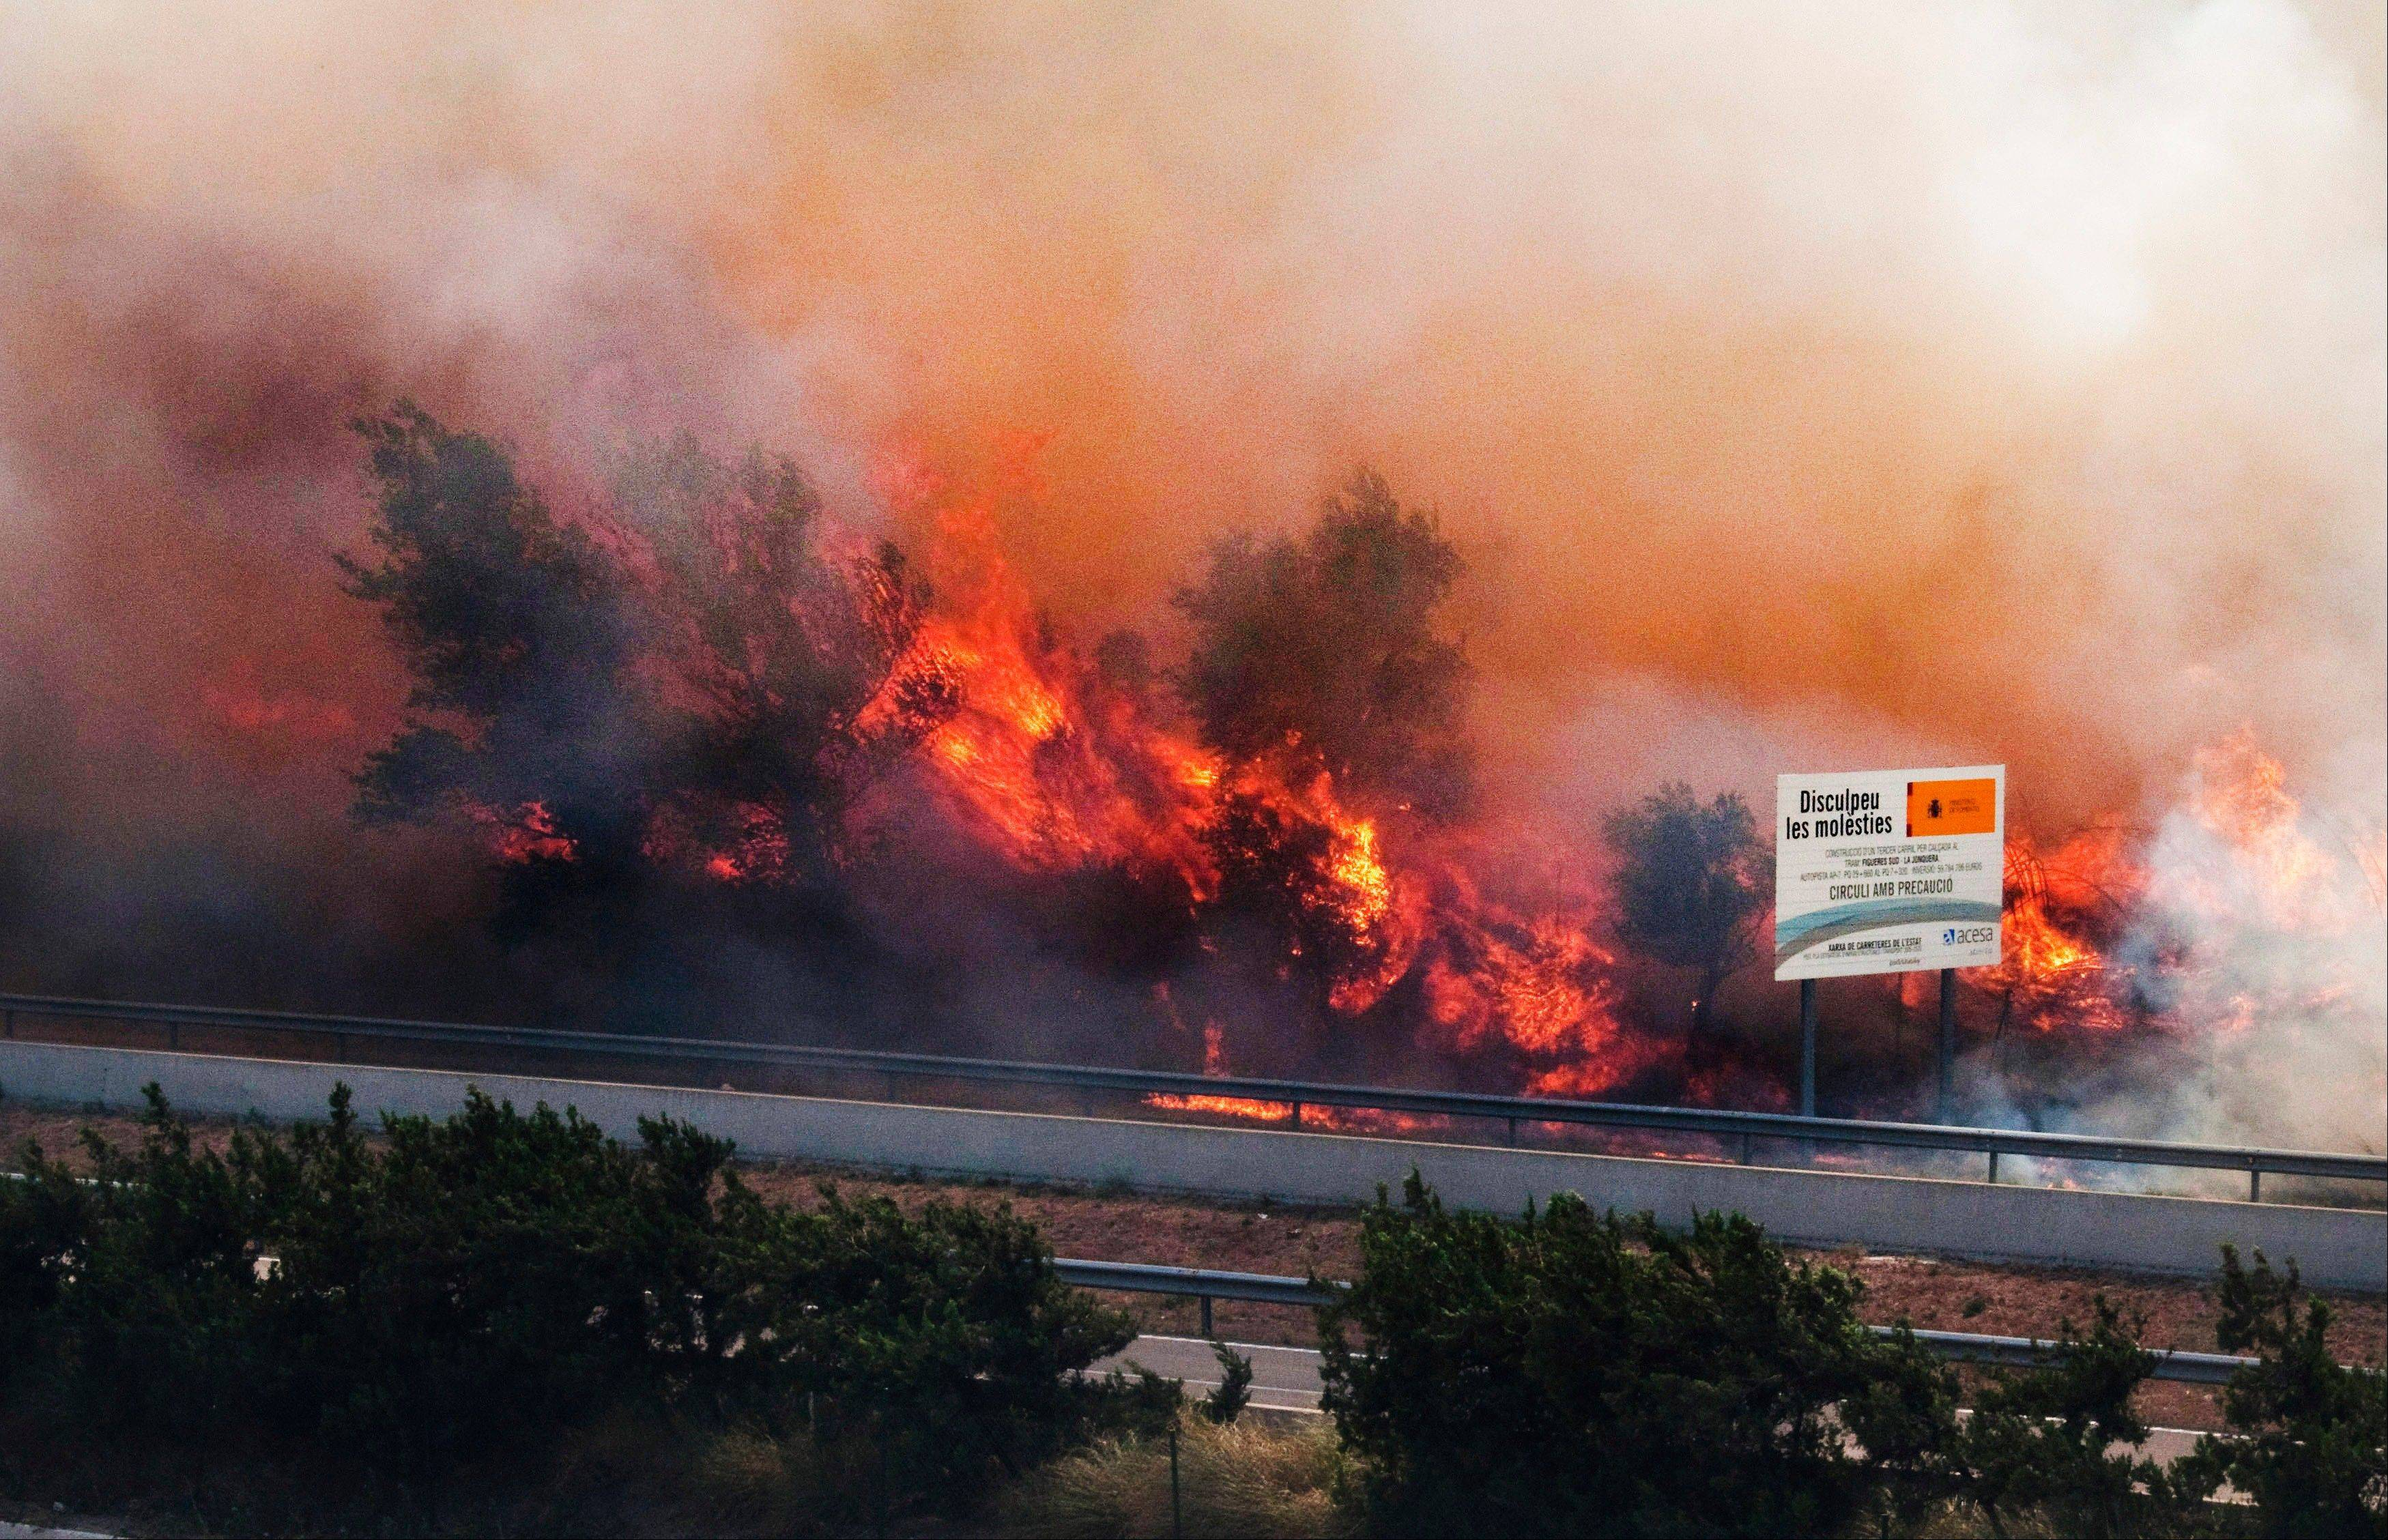 Flames ravage the forest near the highway in La Jonquera, near the border with France, Spain, Sunday.